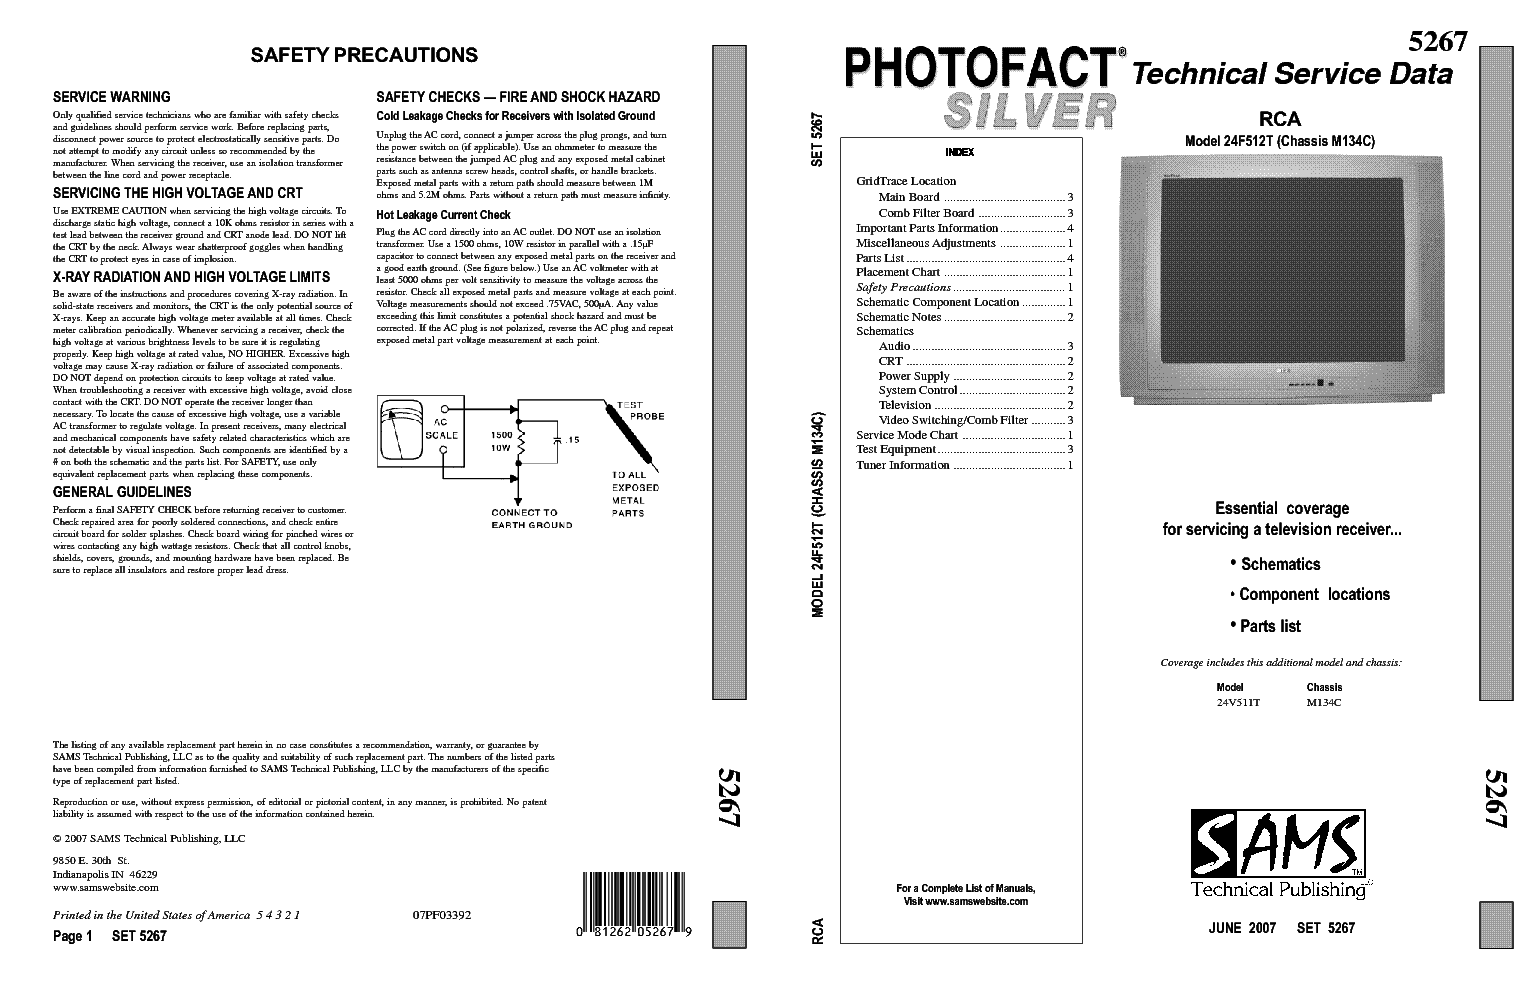 Photofact Silver Rca 24f512t Chassis M134c Service Manual Download Schematics Eeprom Repair